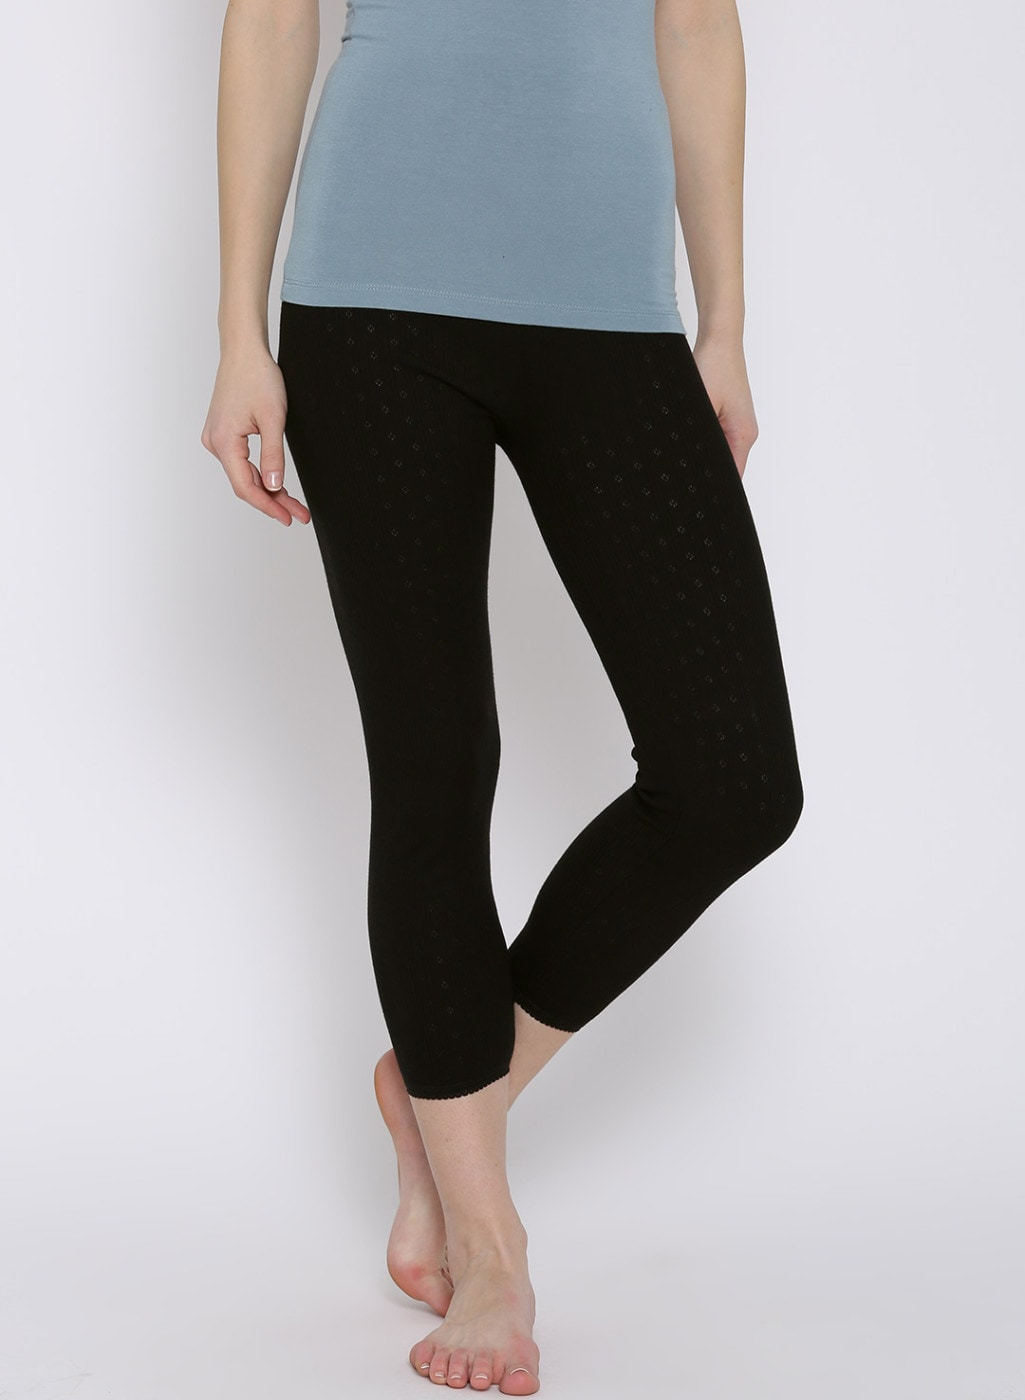 76ea74cc90b58d Women Thermals Kanvin - Buy Women Thermals Kanvin online in India - Jabong